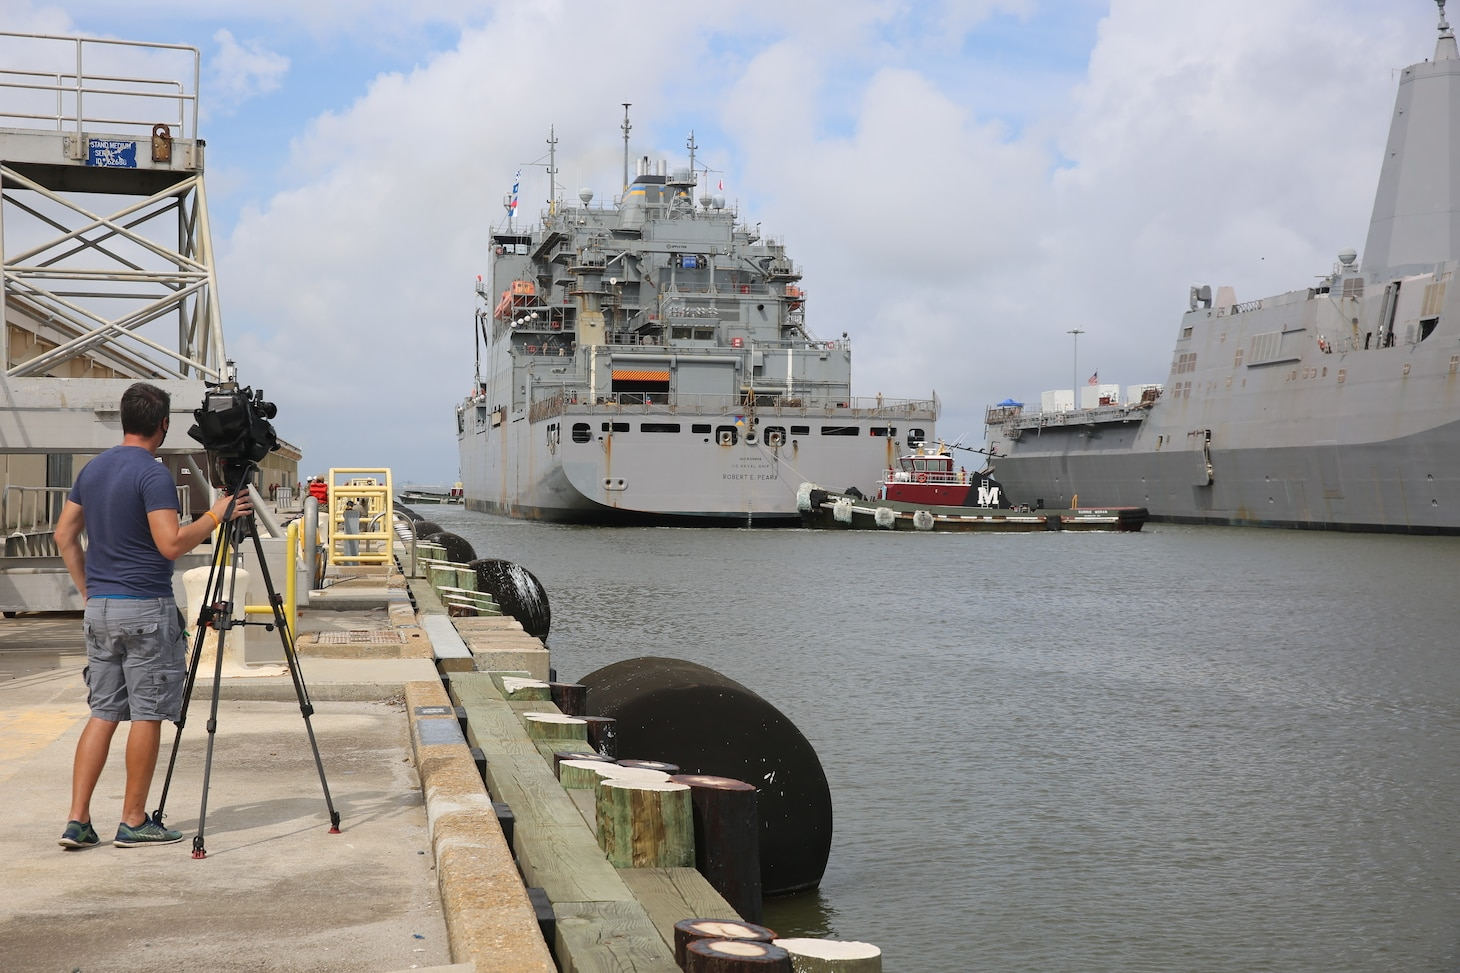 Military Sealift Command's Combat Logistics Force ship USNS Robert E. Peary (T-AKE 5) and the ship's 110 civilian mariners return to Naval Station Norfolk after a seven-month deployment in 2nd, 5th, and 6th Fleets, Sept. 8.